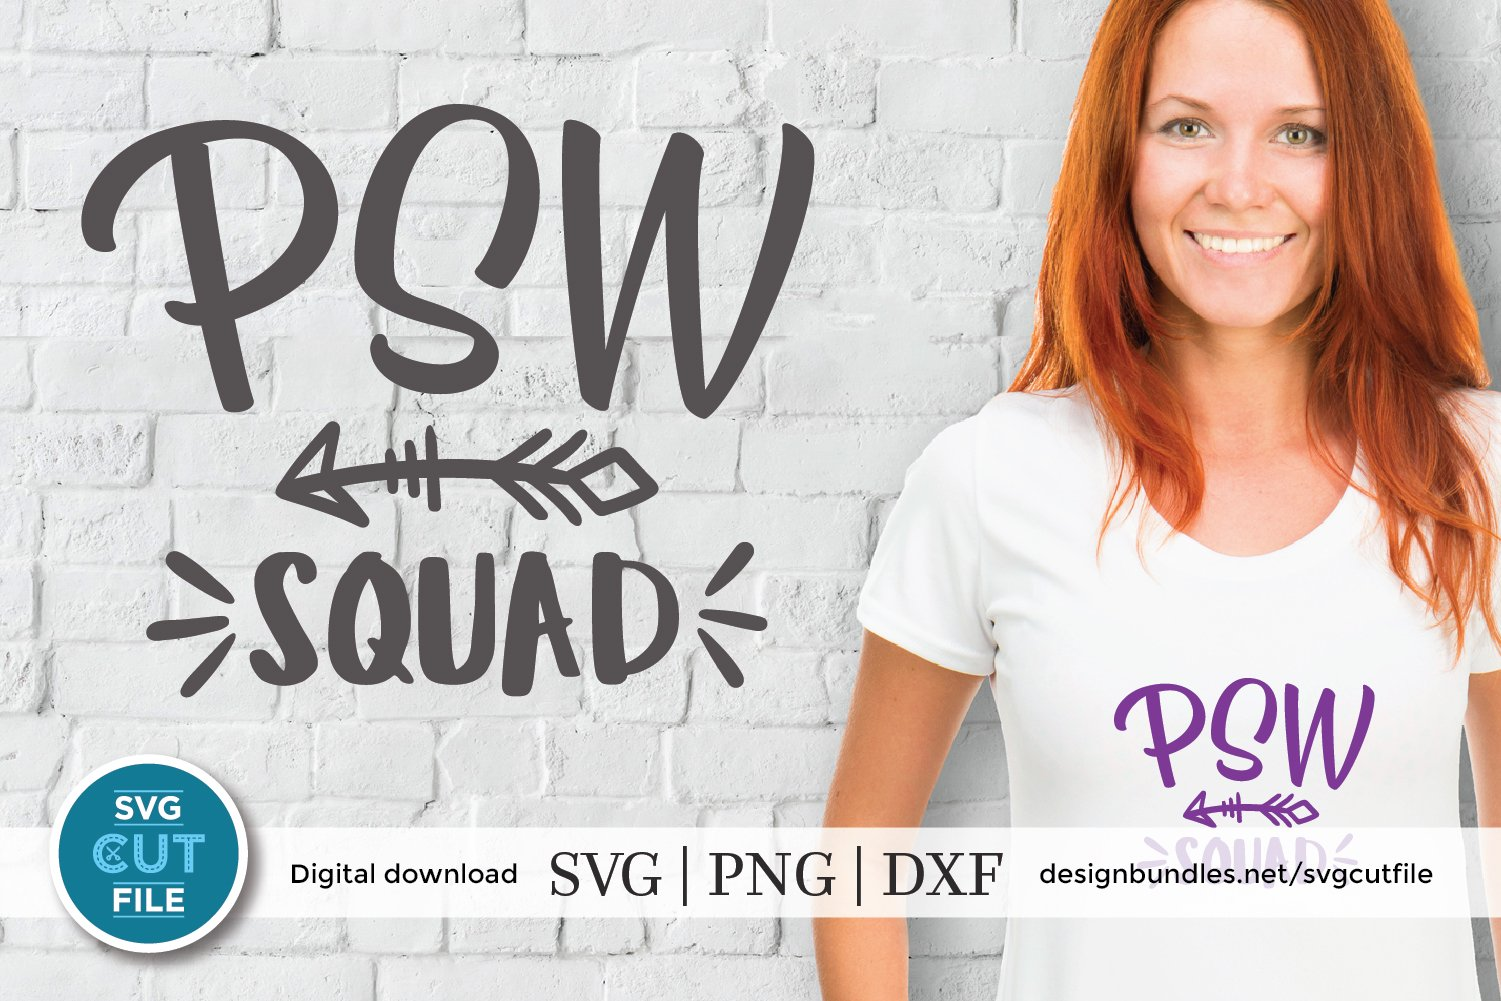 PSW squad with arrow svg-a Personal support worker svg file example image 1